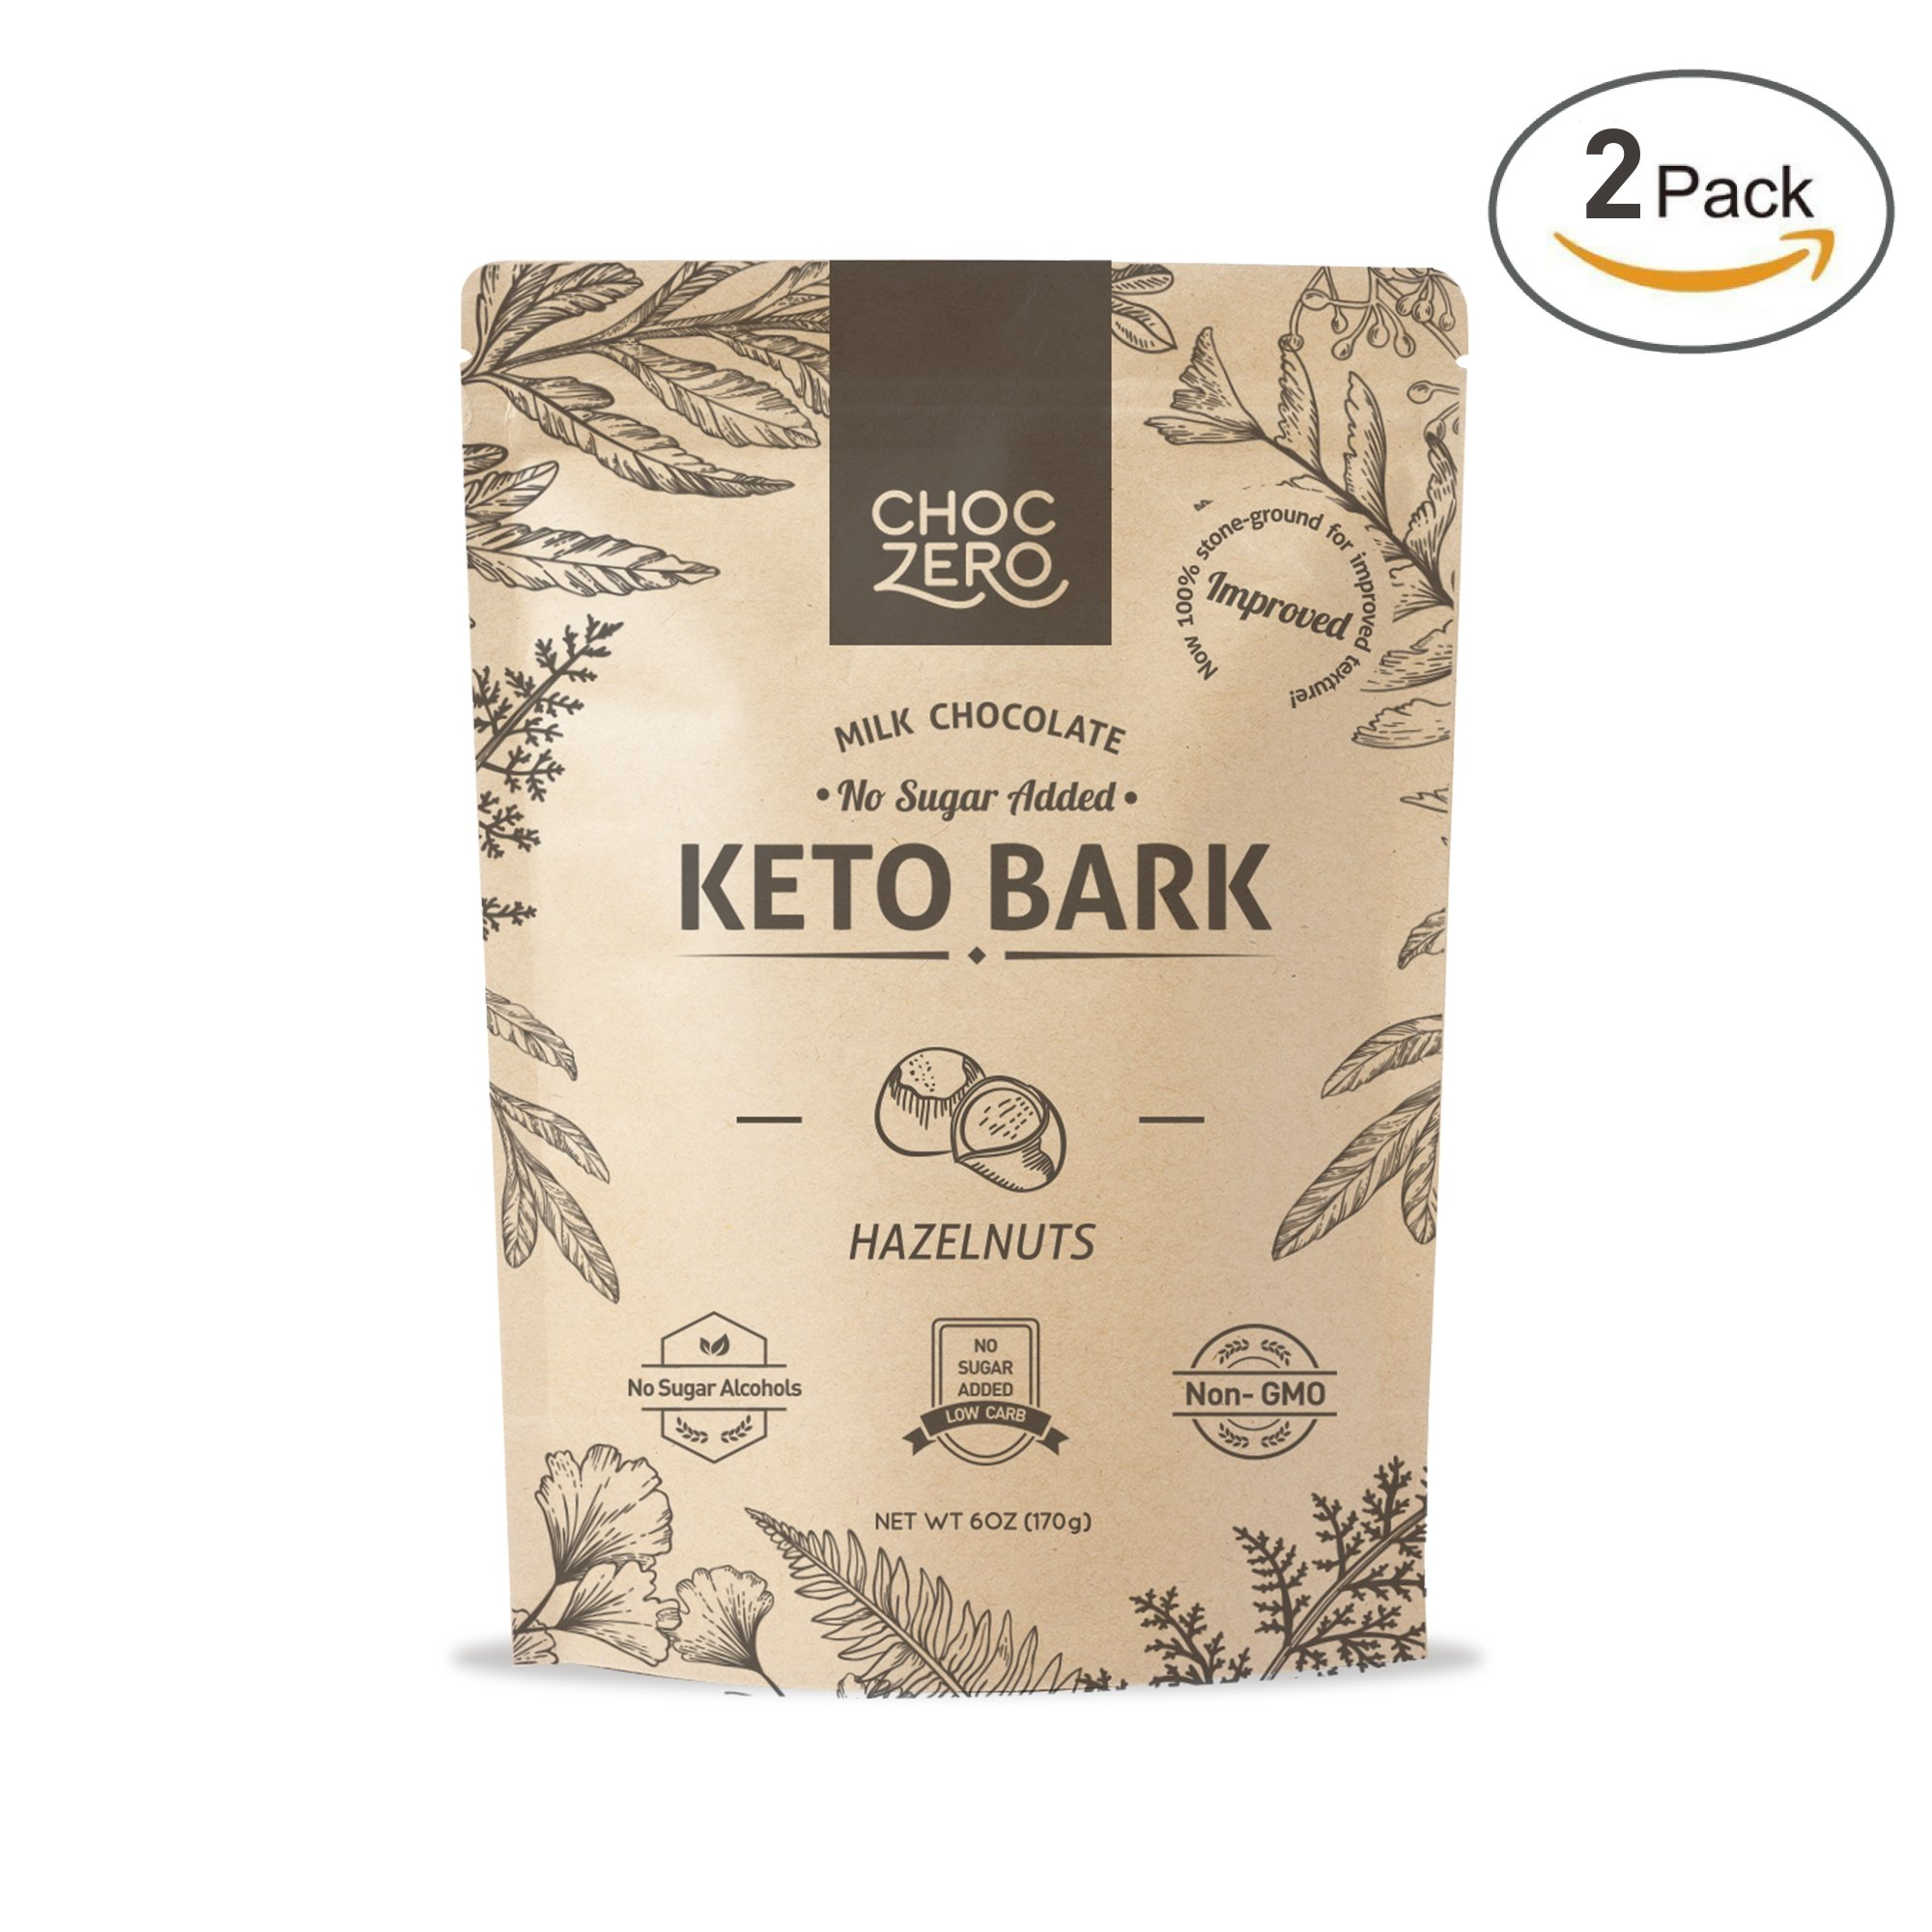 ChocZero's Keto Bark, Milk Chocolate Hazelnuts, 100% Stone-Ground, No Added Sugar, Low Carb, No Sugar Alcohols, Non-GMO (2 bags)